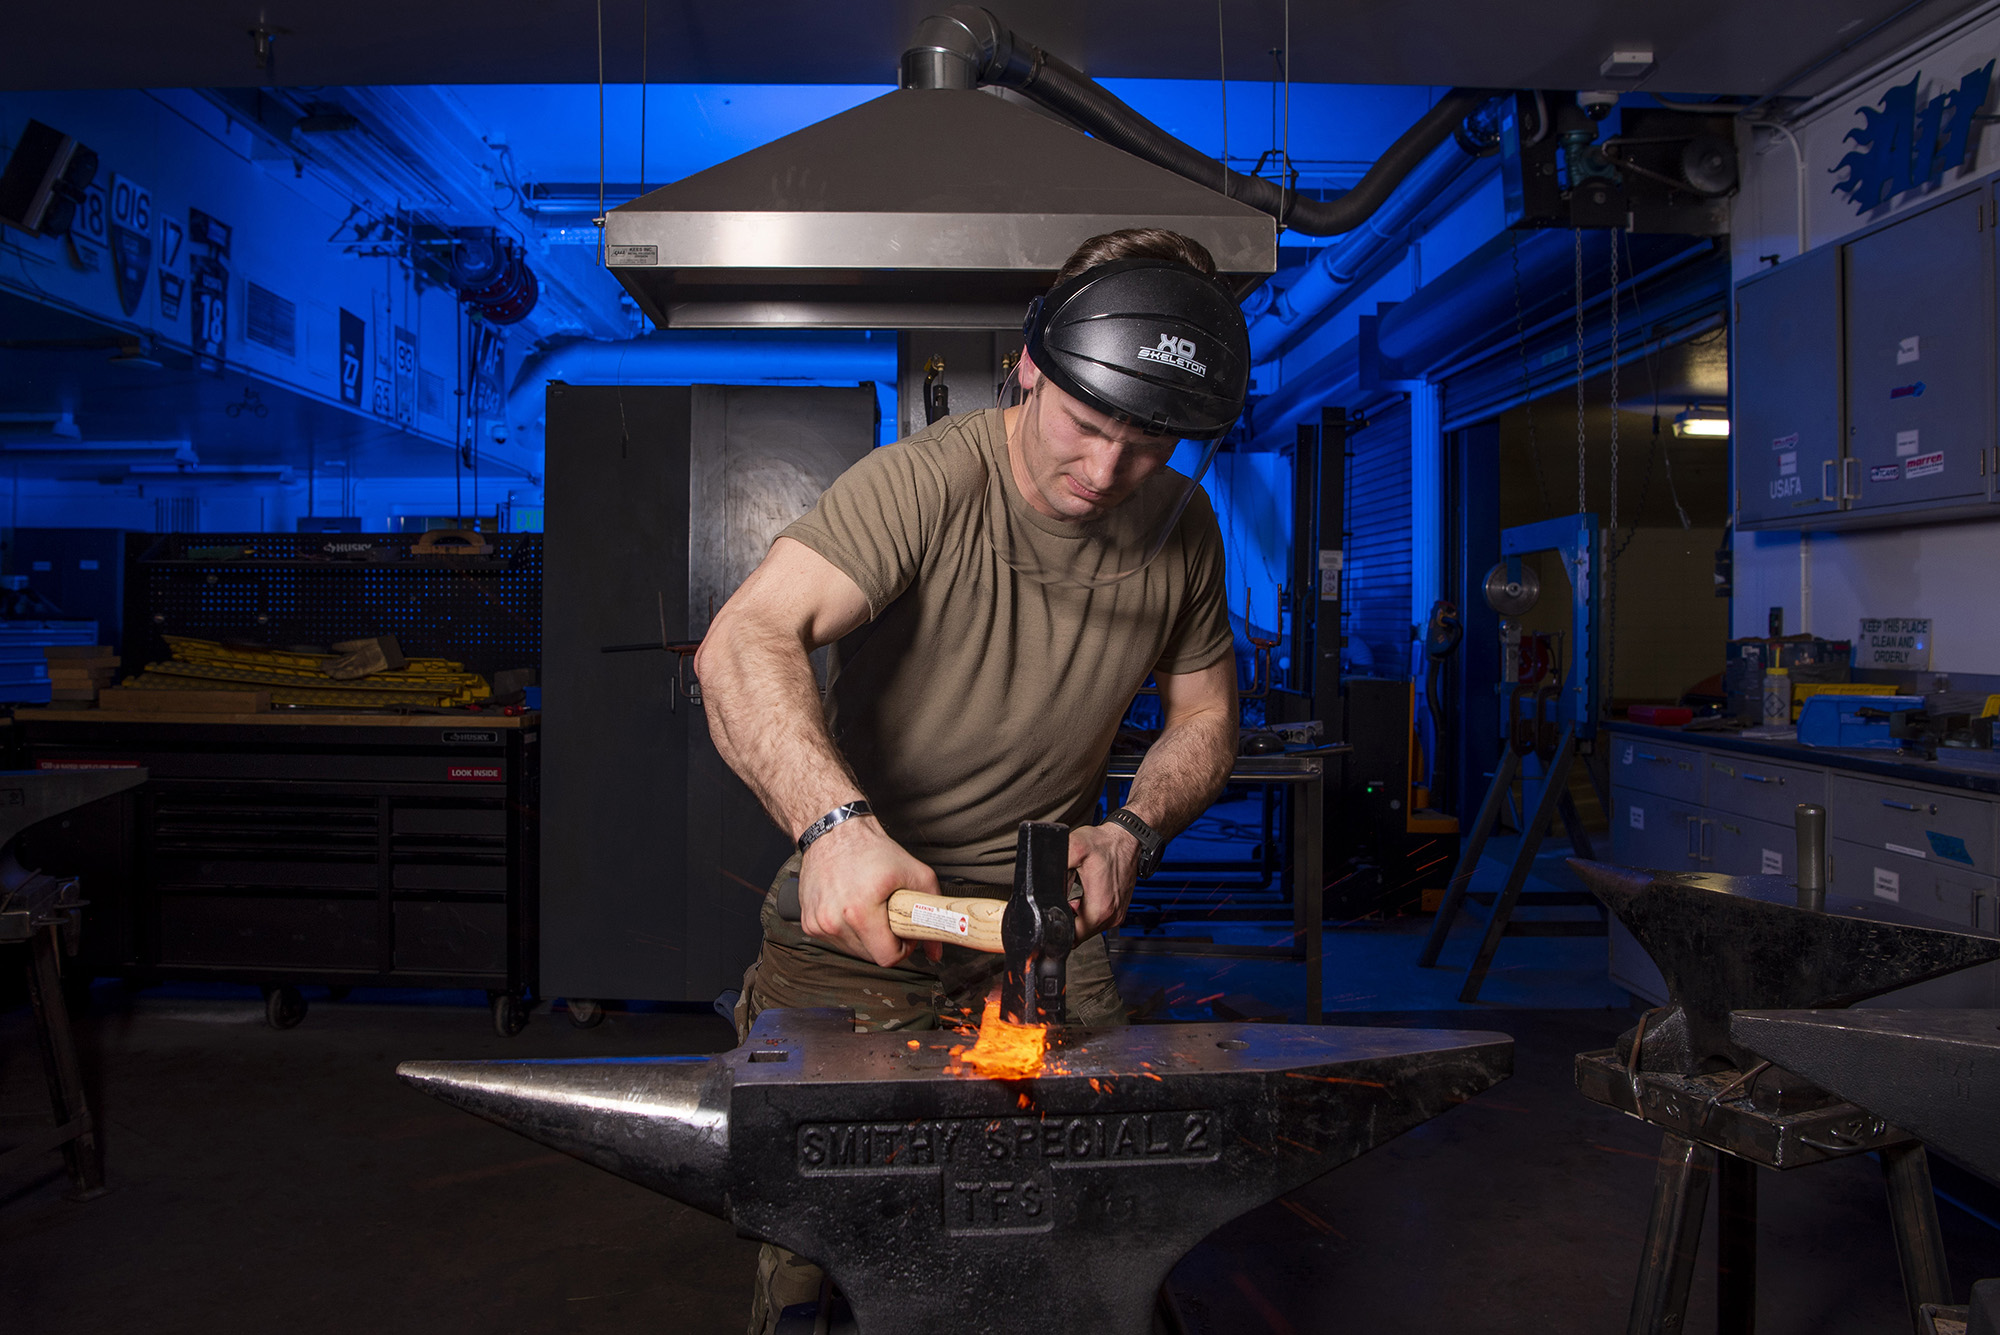 Cadet 1st Class Isaac Perkins shapes a piece of hot steel into a knife as part of the physical metallurgy class in the Air Force Academy's mechanical engineering metal fabrication laboratory, Feb. 17, 2021. (Joshua Armstrong/Air Force)